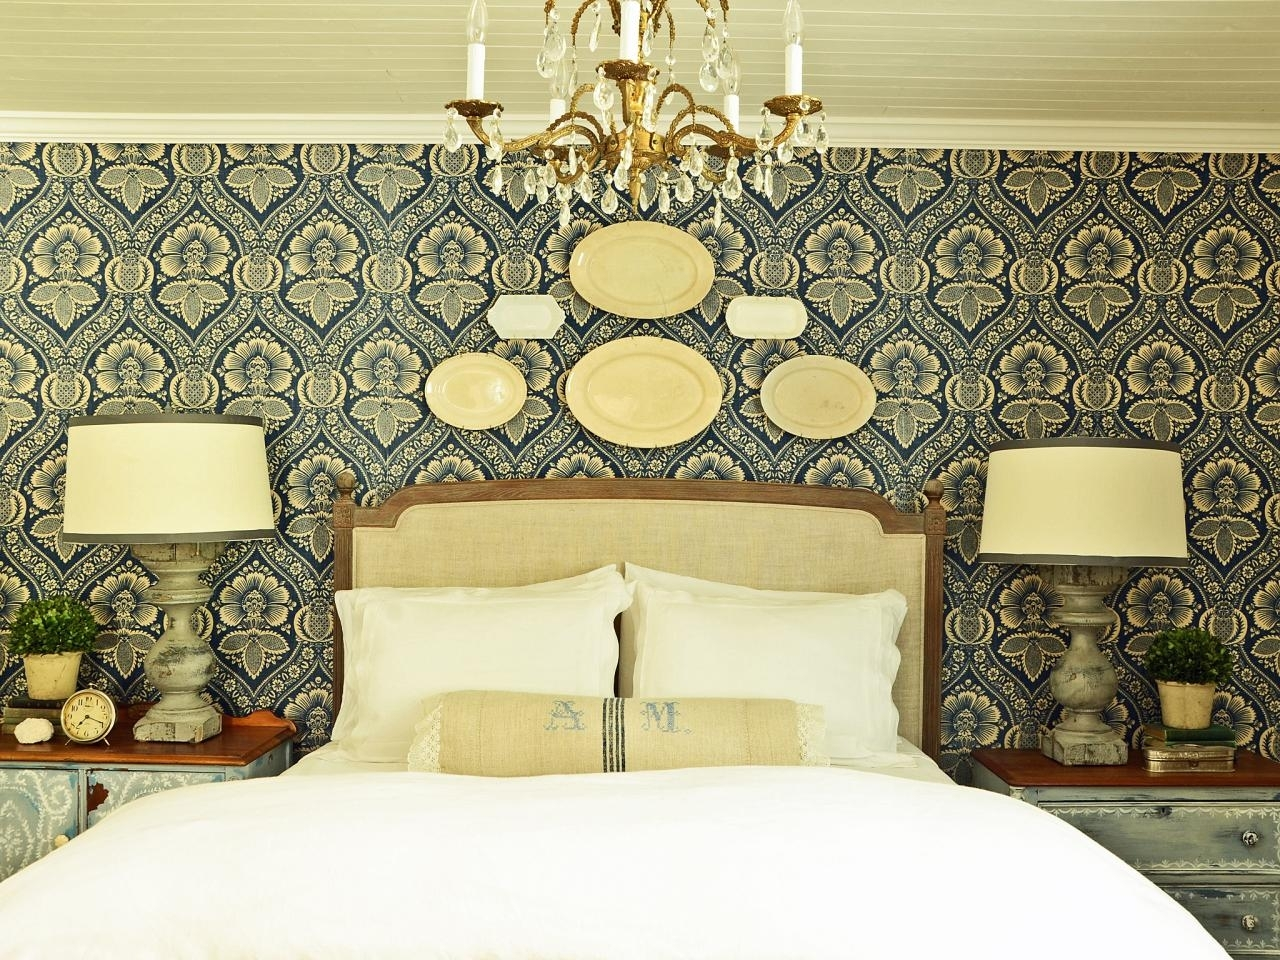 How To Install A Fabric Feature Wall   Hgtv With Most Recently Released Fabric Wall Art Above Bed (View 9 of 15)